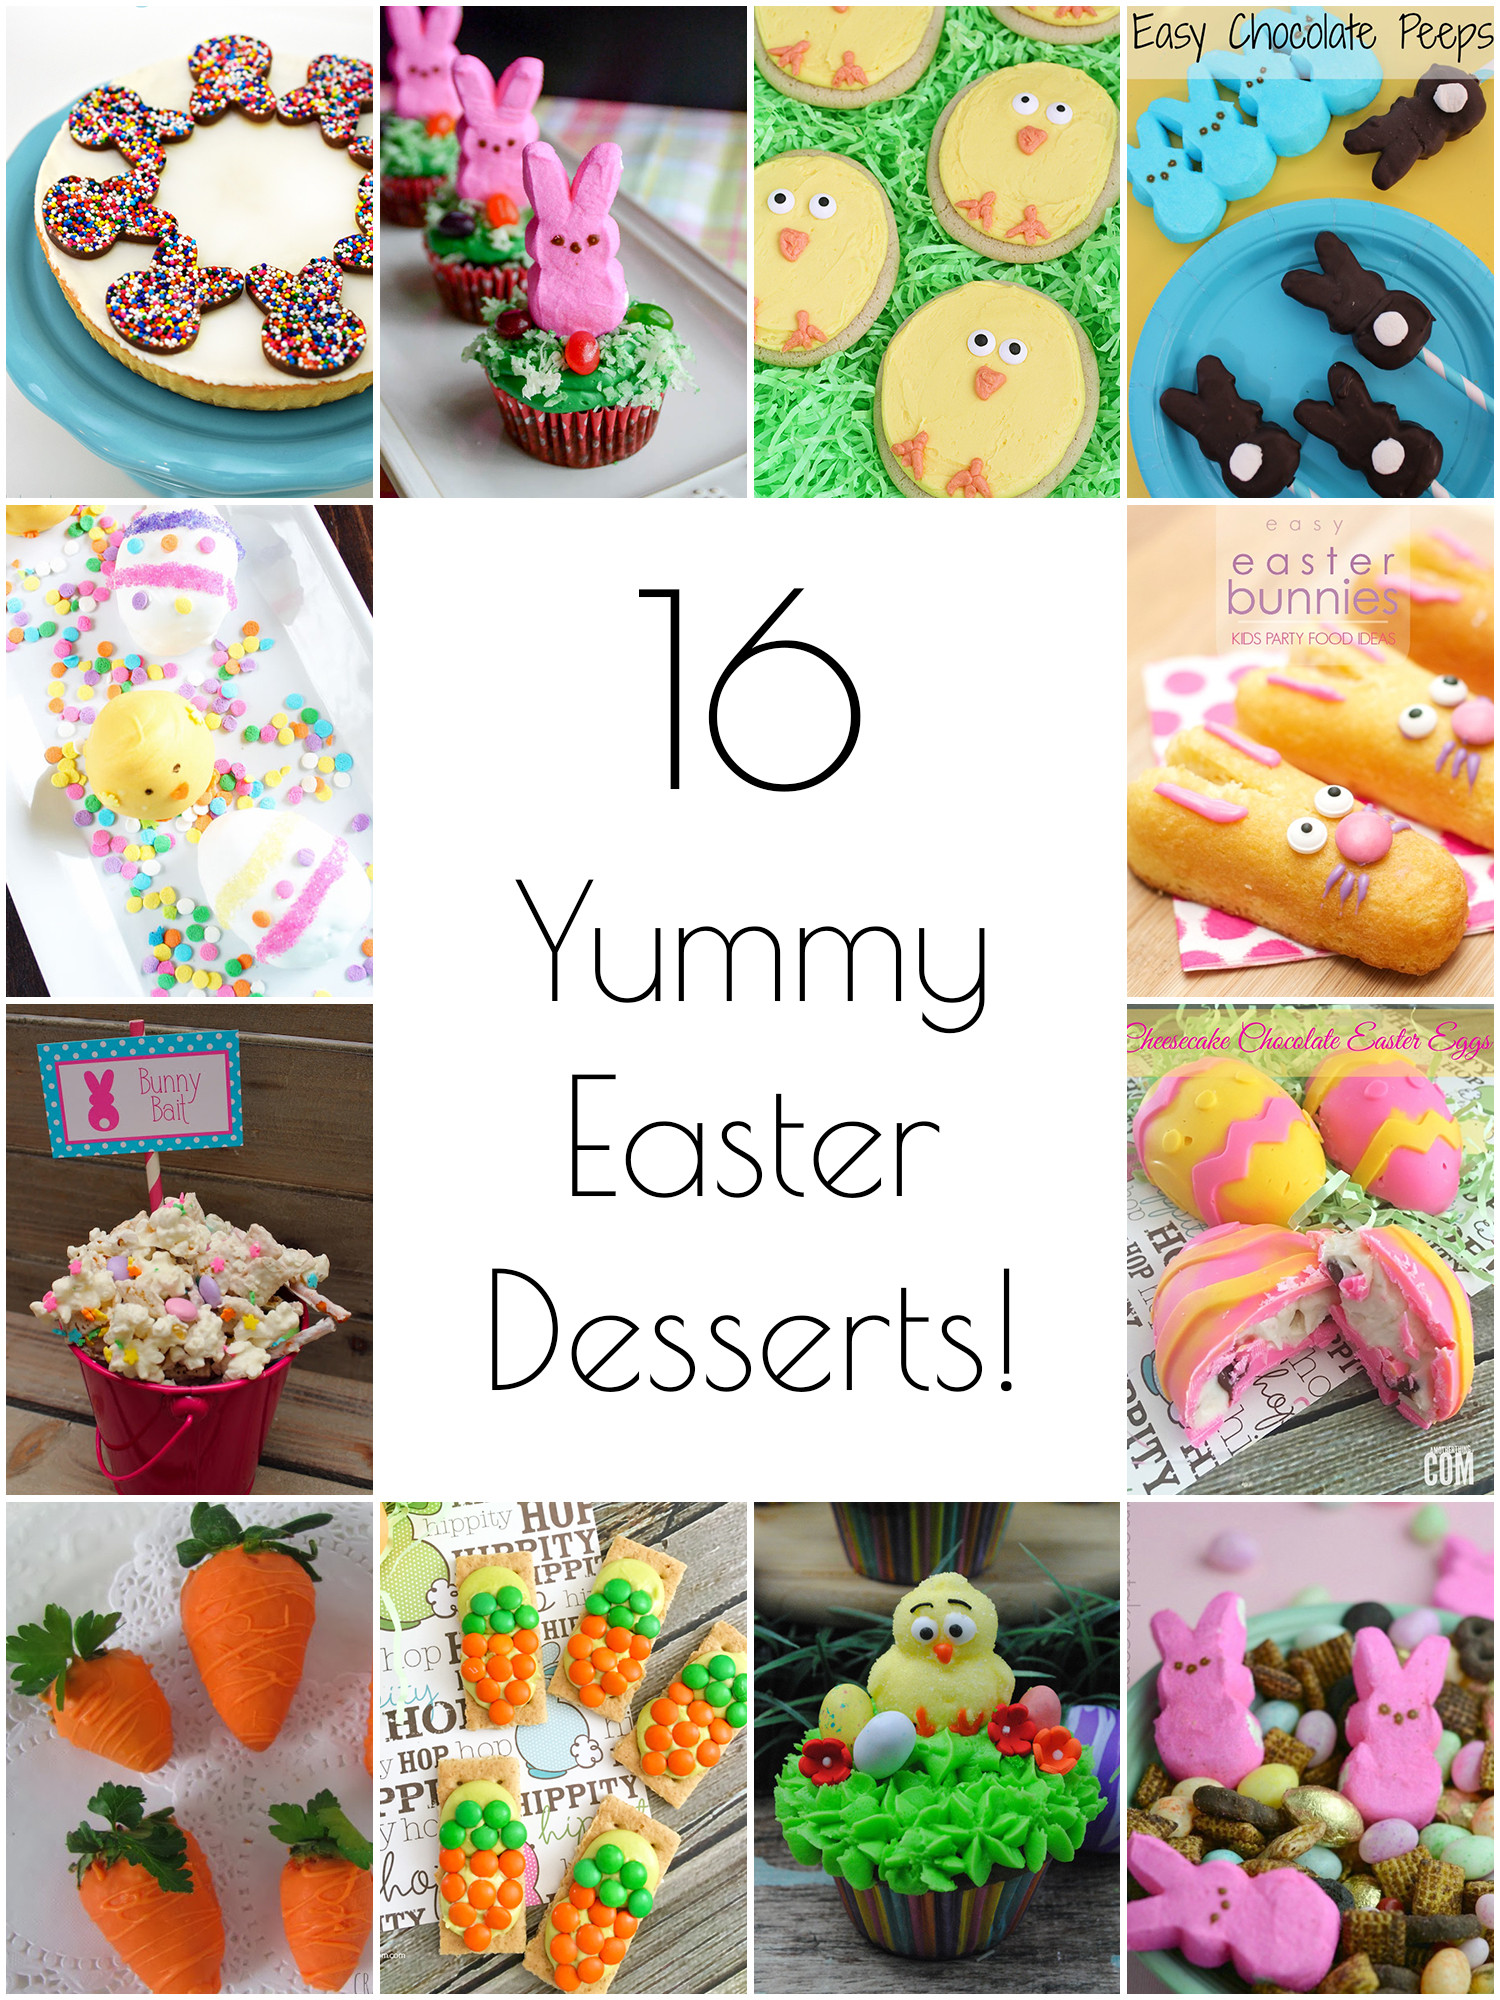 Yummy Easter Desserts  So Creative 16 Yummy Easter Desserts